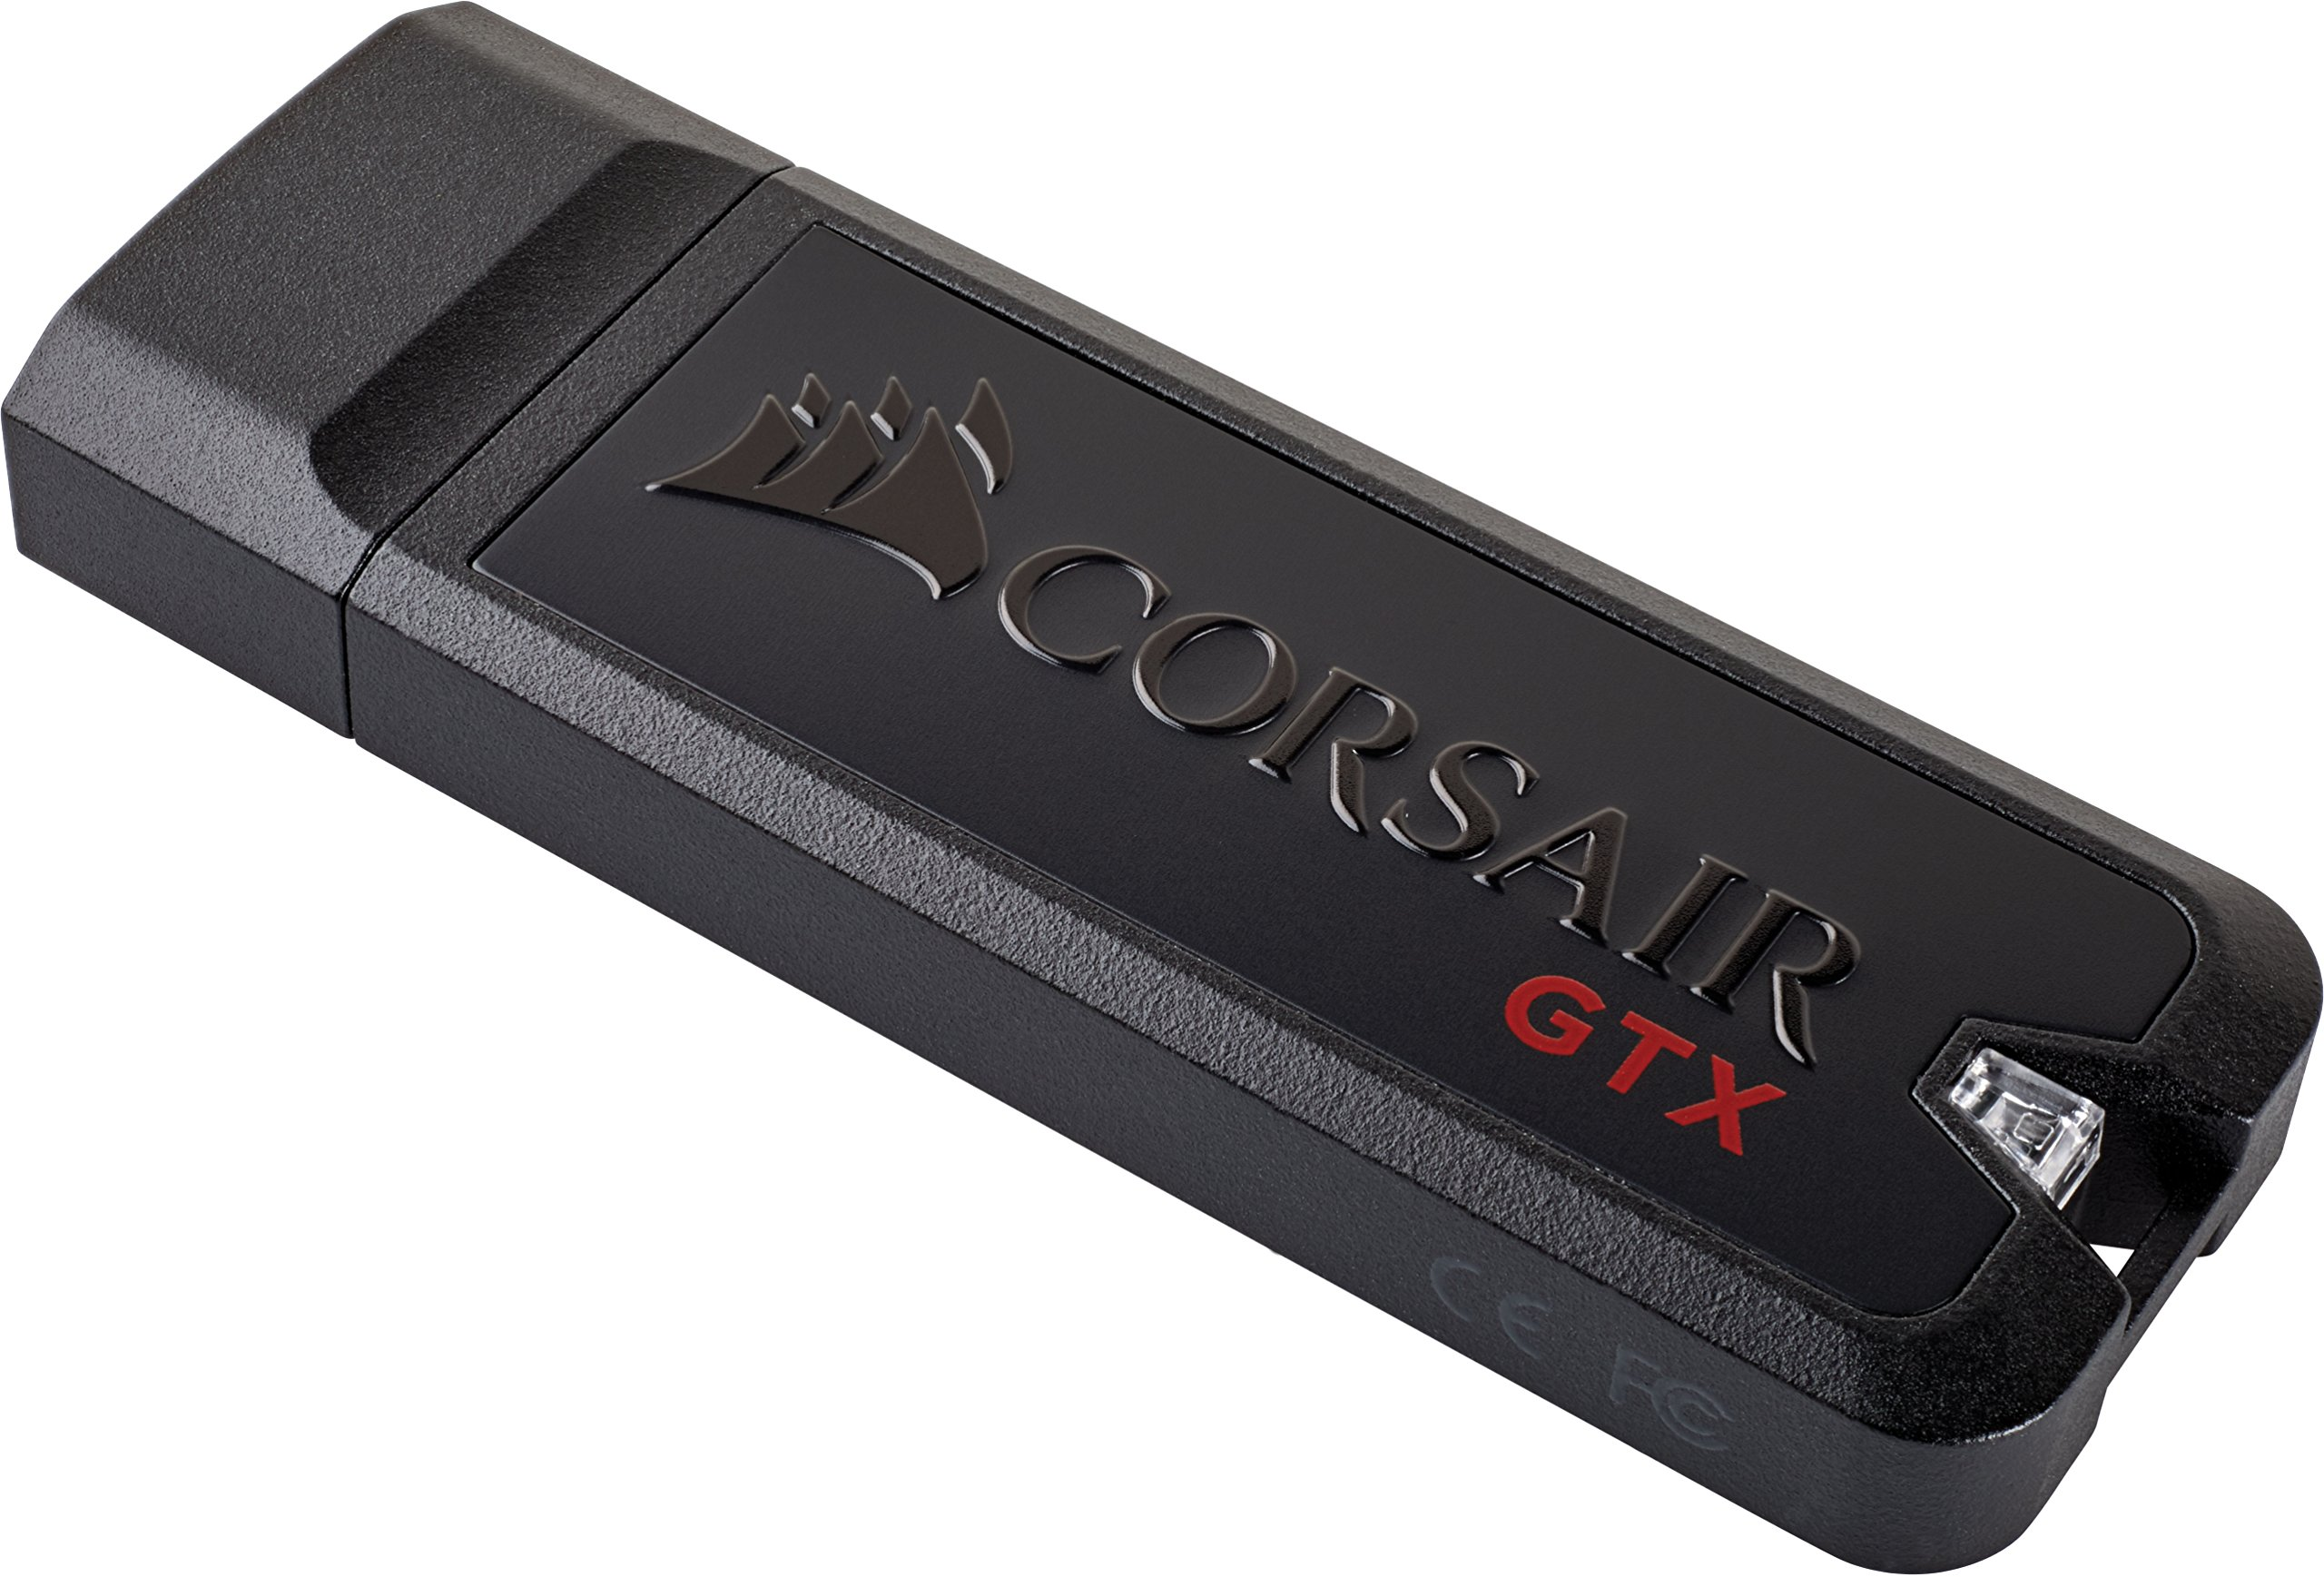 Corsair Flash Voyager GTX 512GB USB 3.1 Premium Flash Drive by Corsair